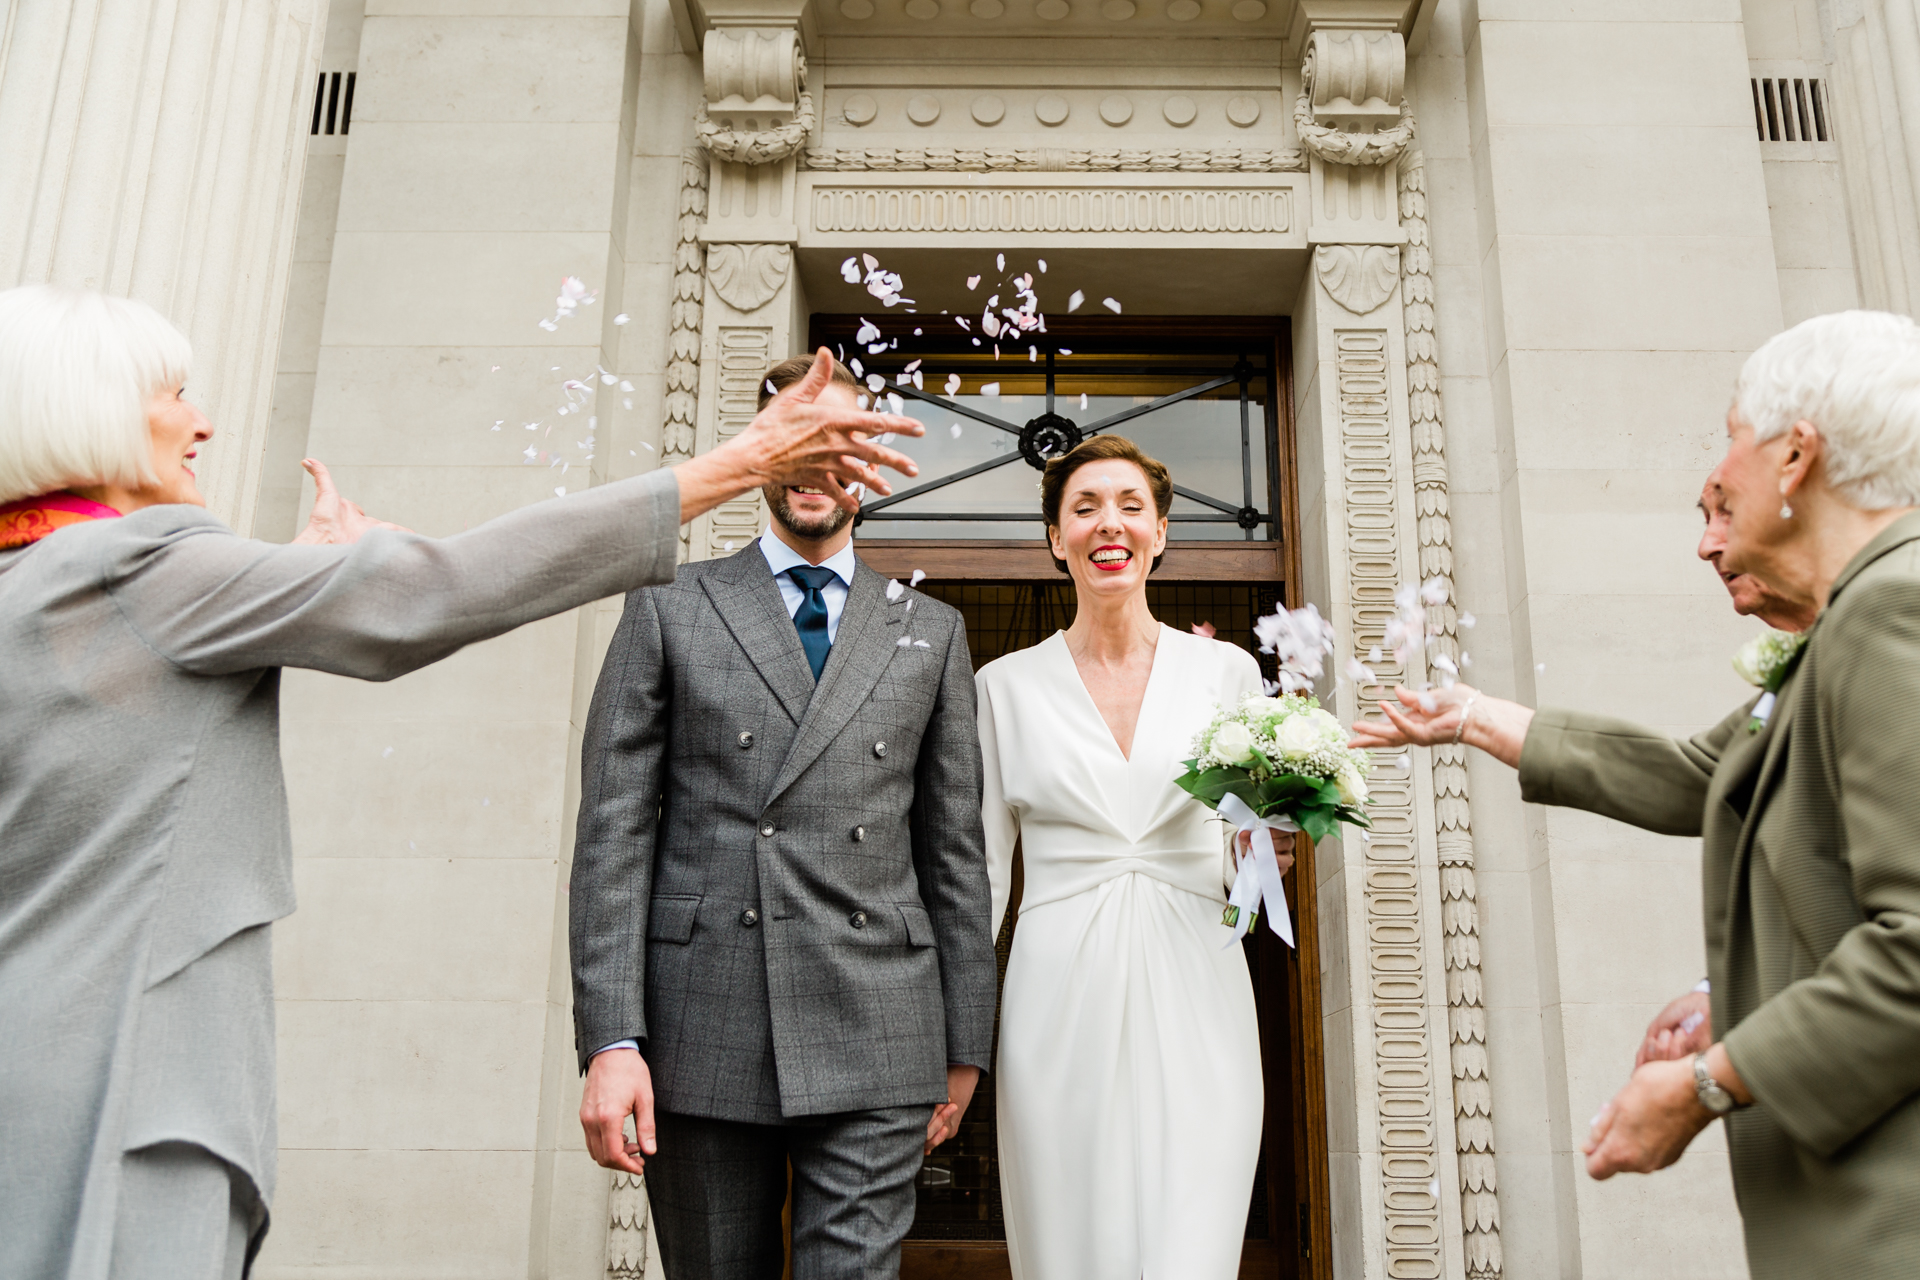 Central London Wedding Elopement Image | Confetti was thrown after the official vows, all three of their guests in the shot. Only three guests, and still a hand in front.